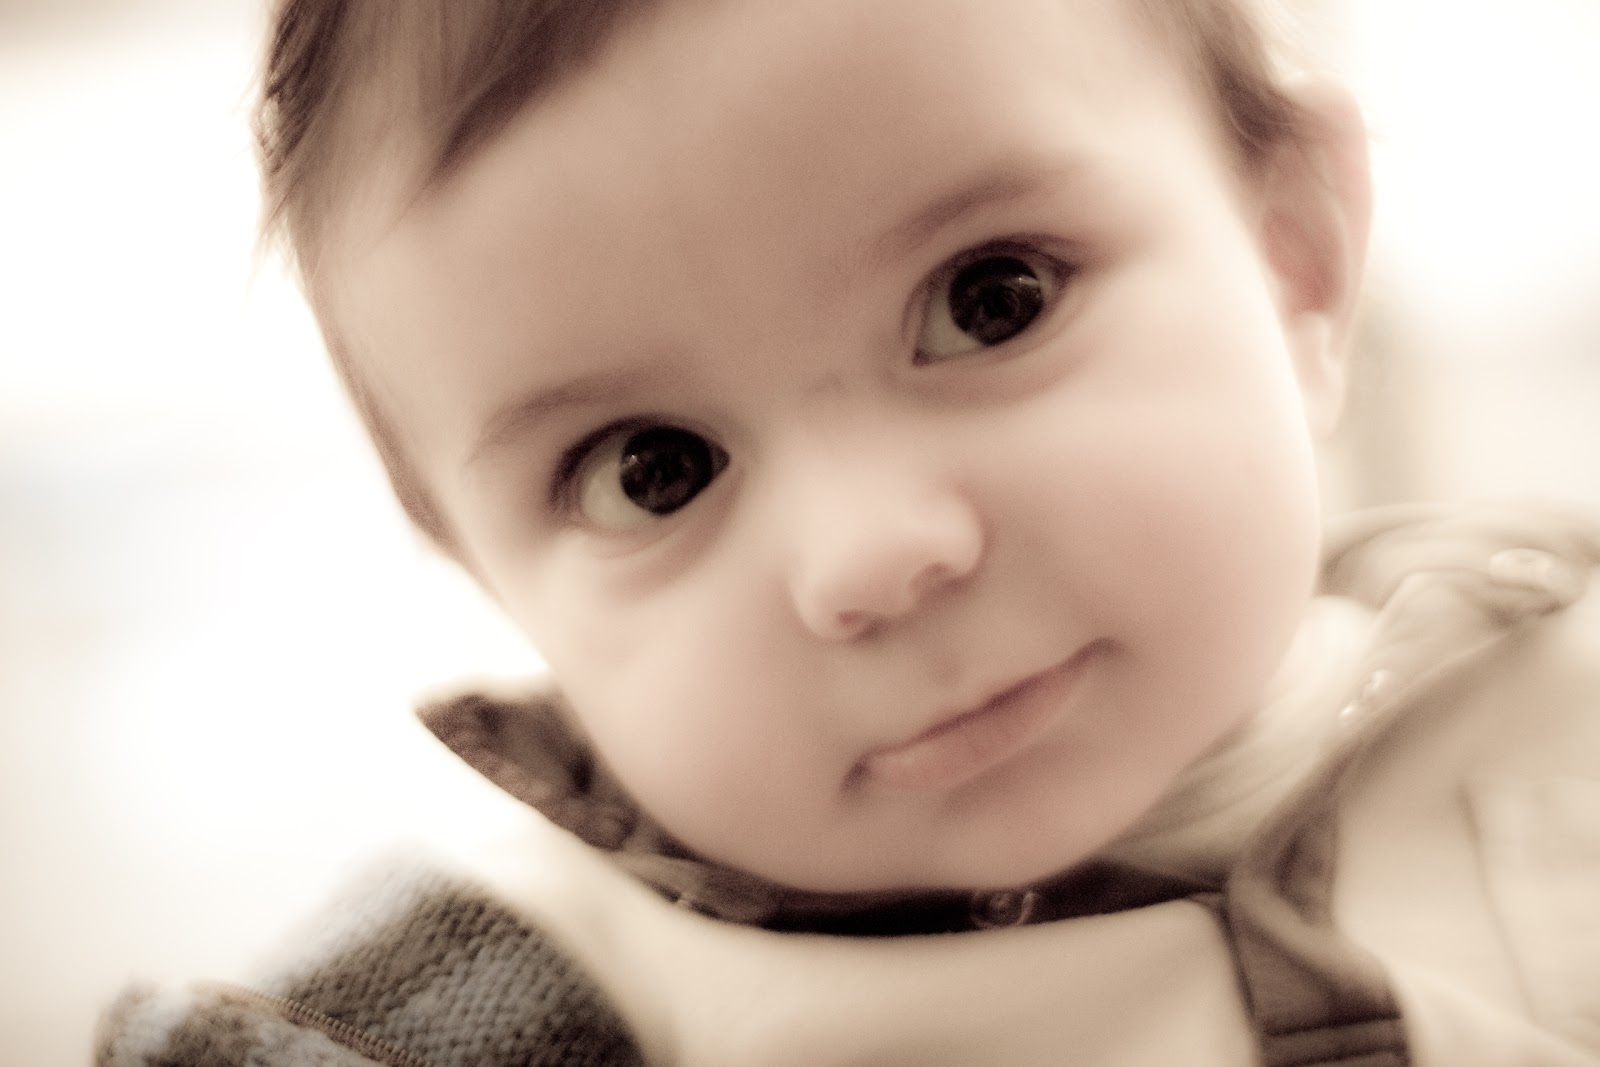 Cute Baby Boy Pic: 20+ Cute And Beautiful Baby Photos